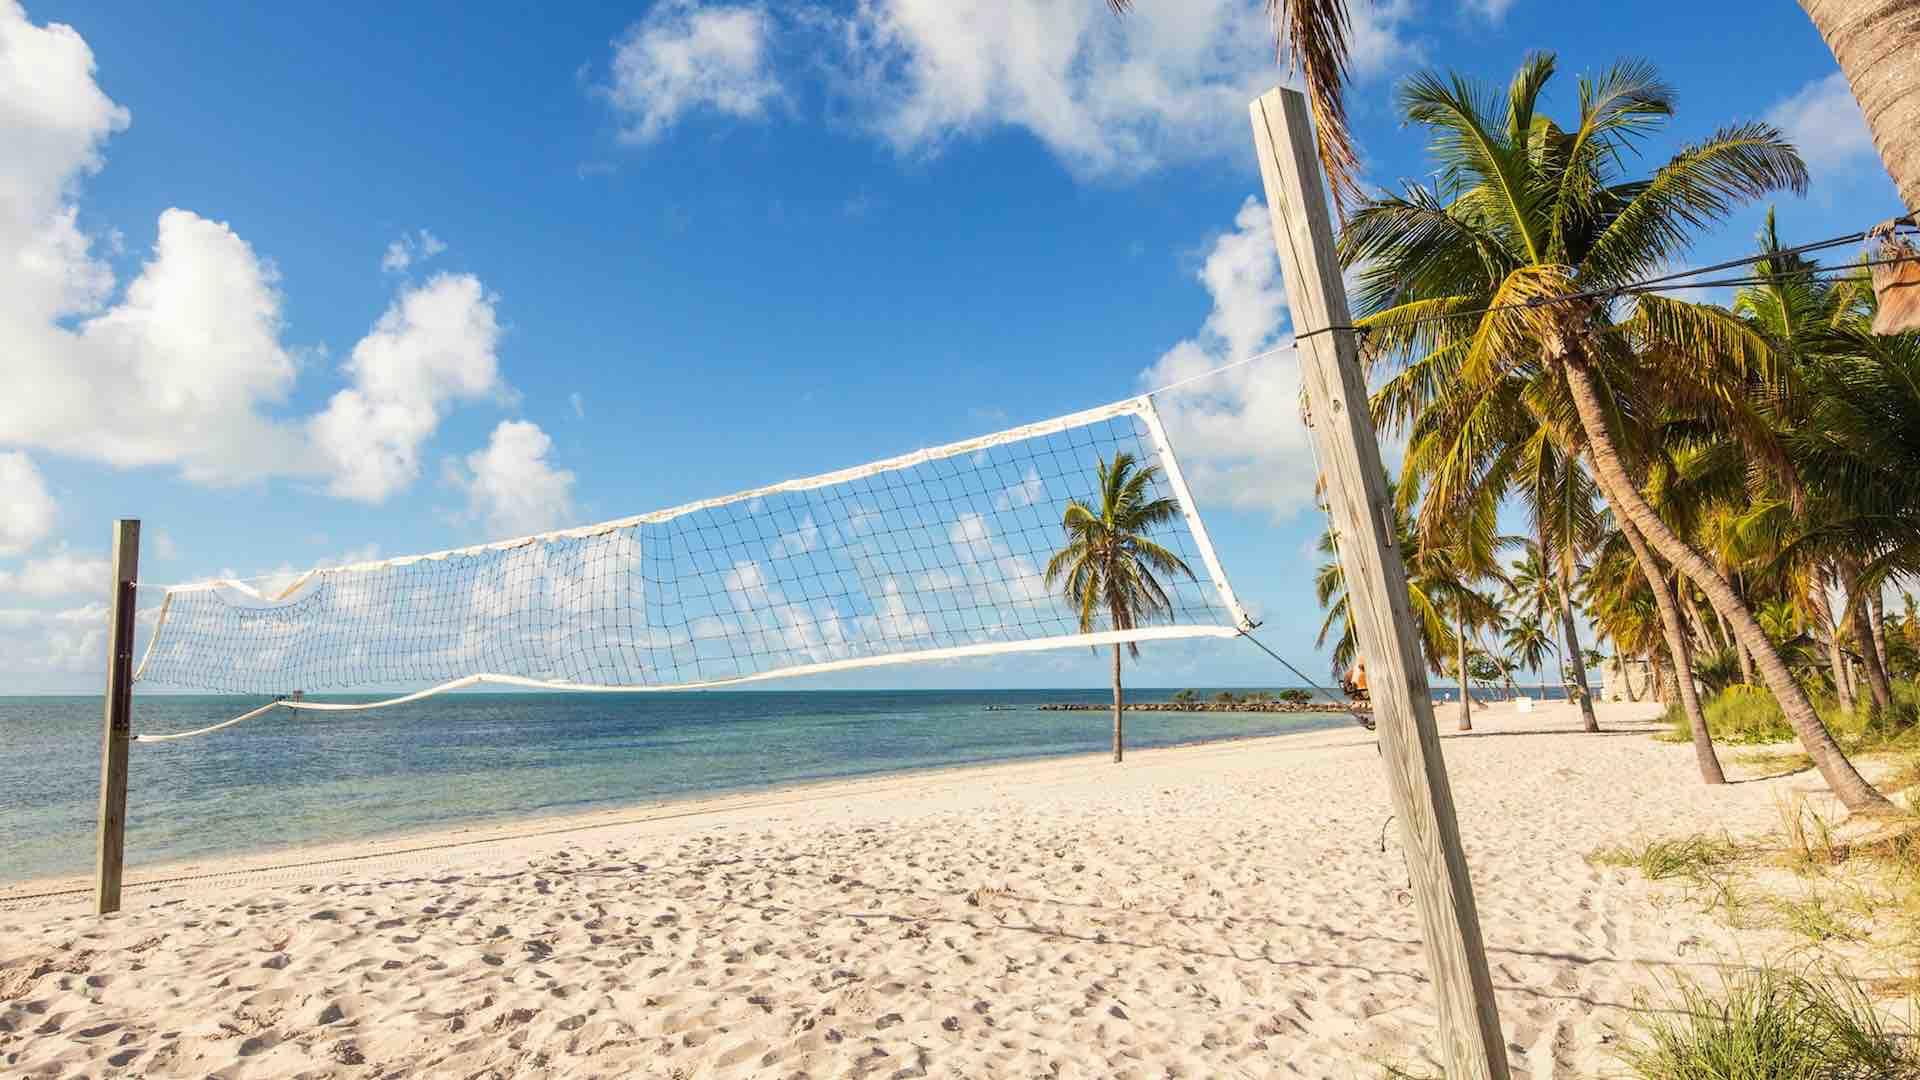 Smathers beach has volley ball nets and other fun activities...